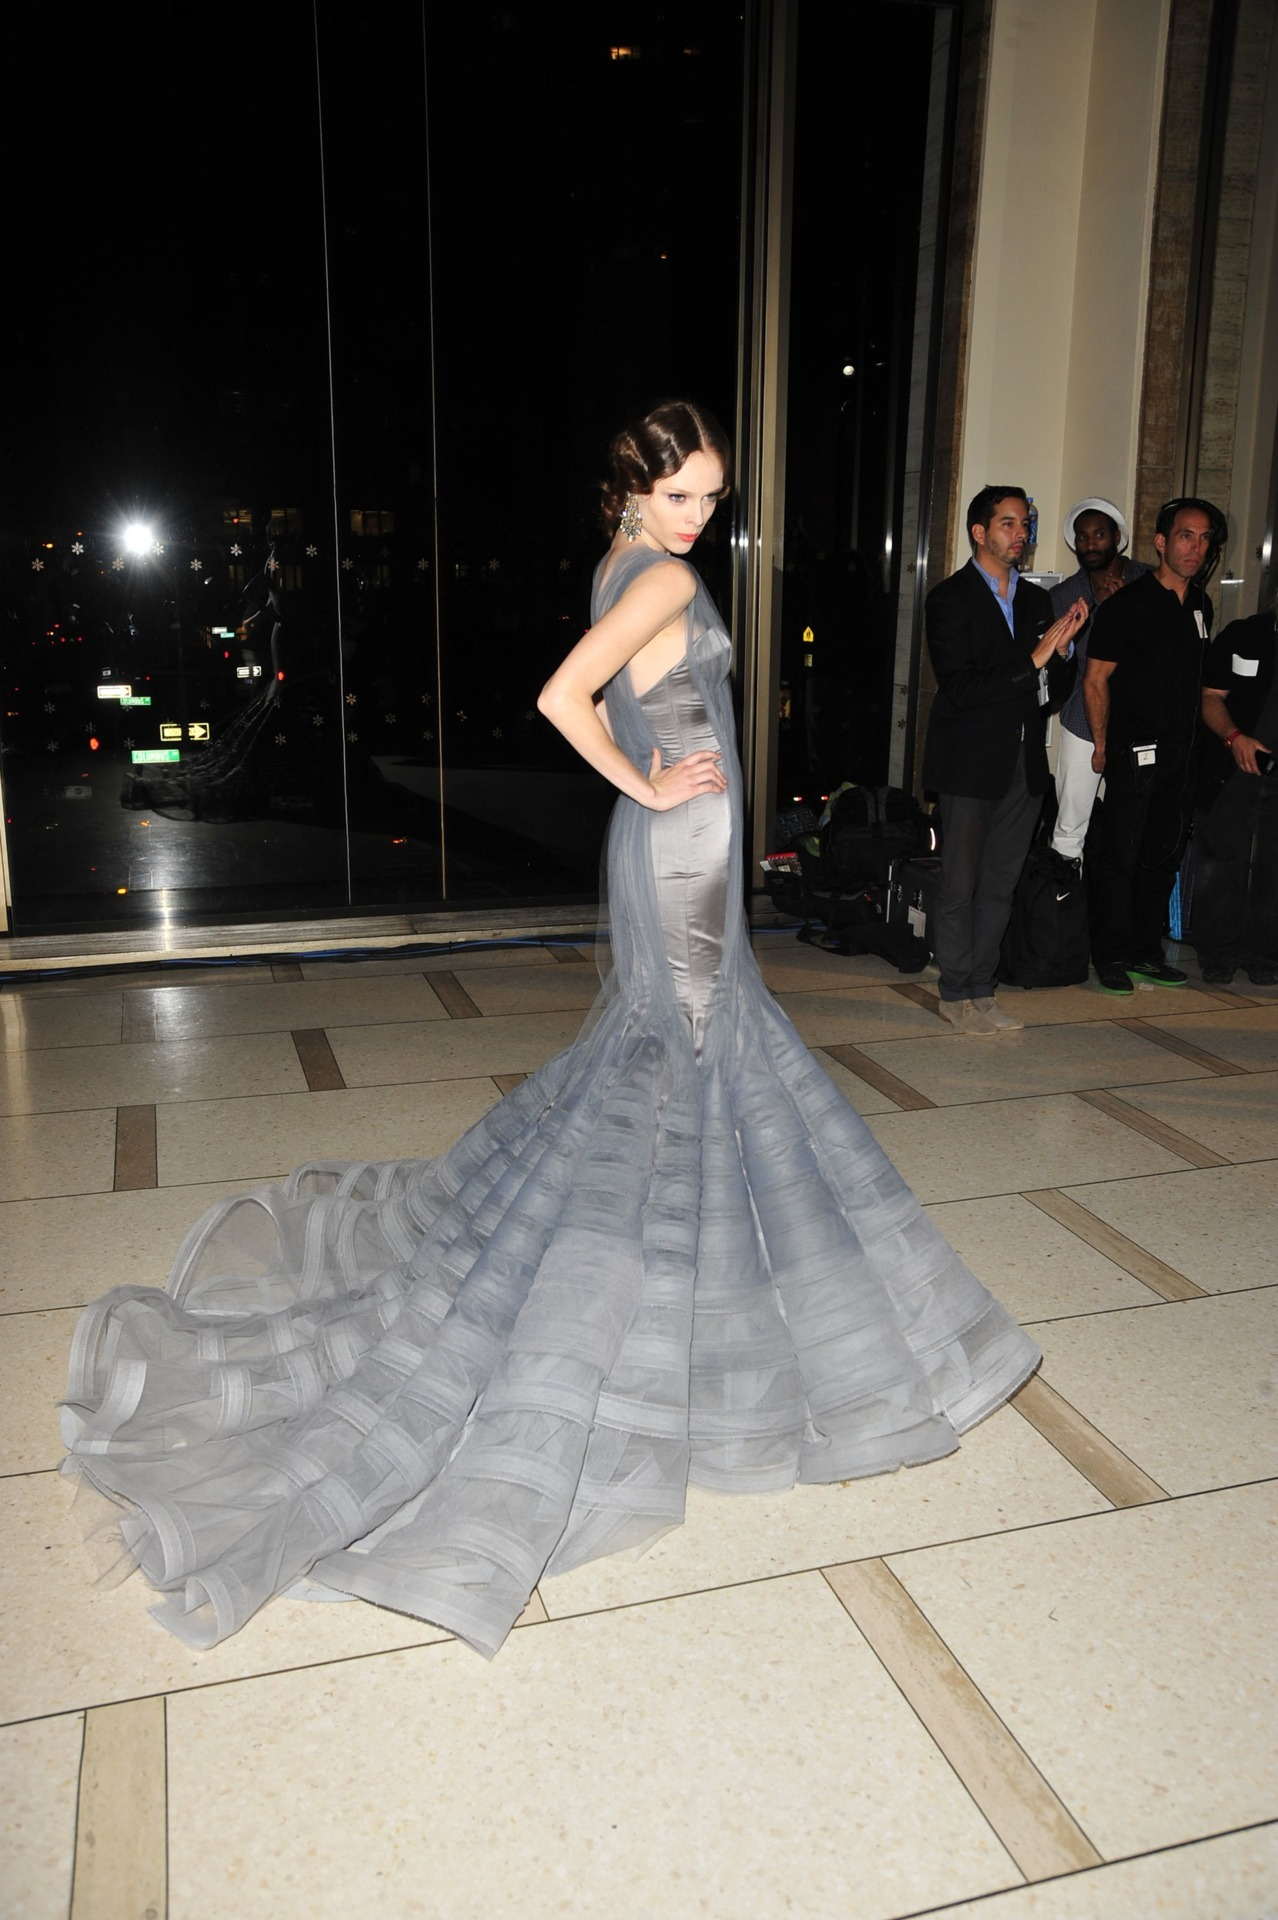 valentineuhovski:  Welcome to Tumblr territories, Mr. Zac Posen!